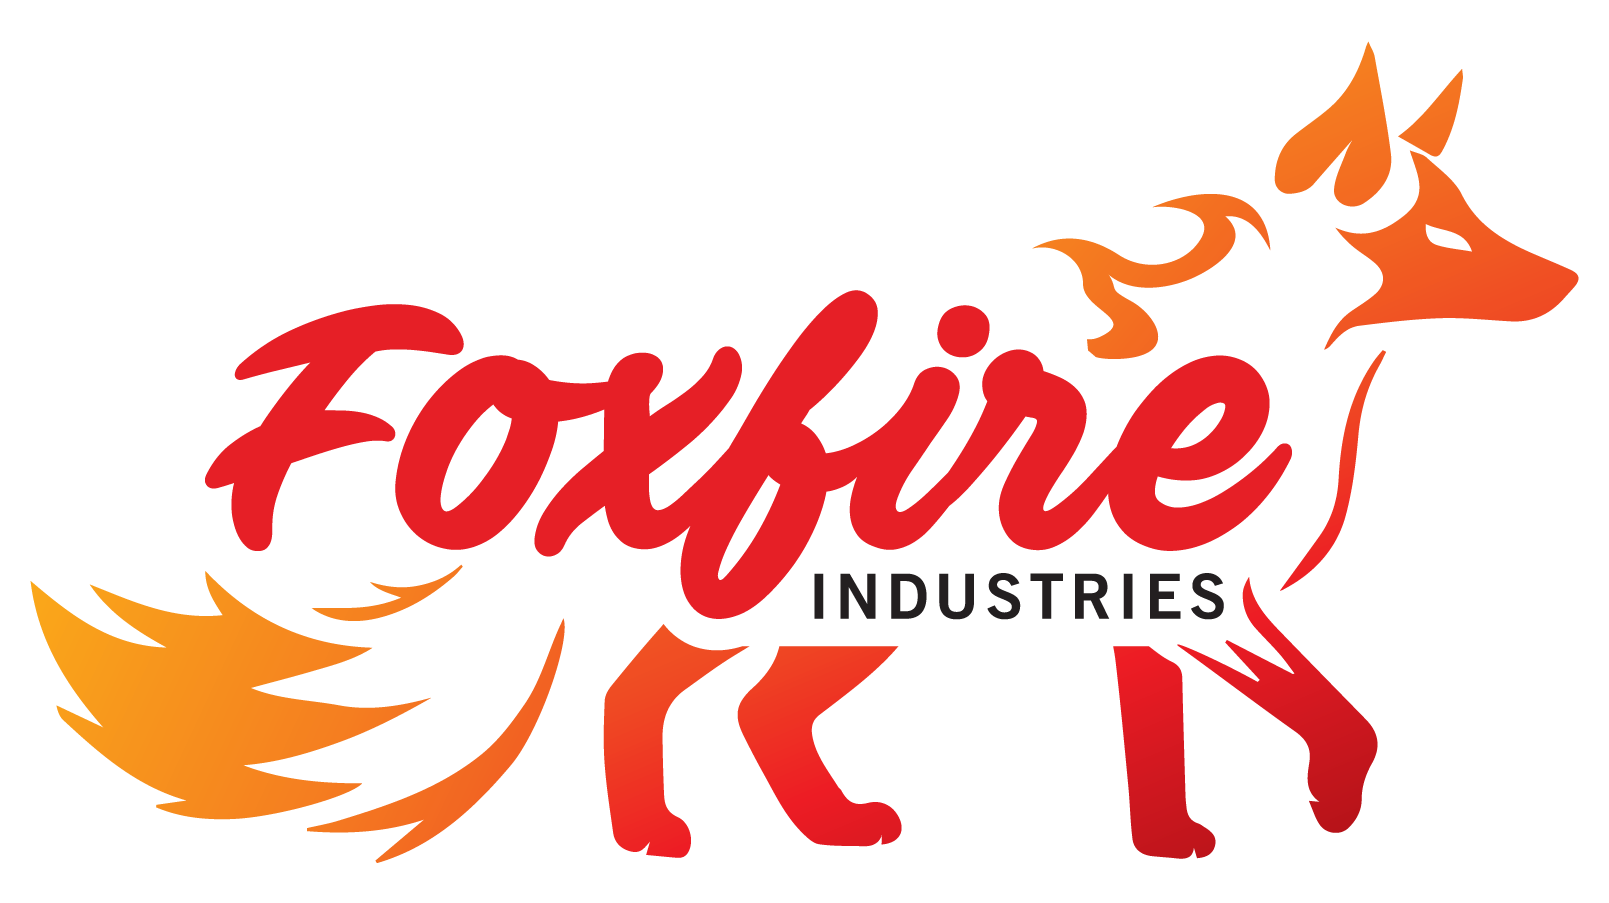 https://davespicer.com.au/wp-content/uploads/sites/749/2019/11/Foxfire-Logo.png